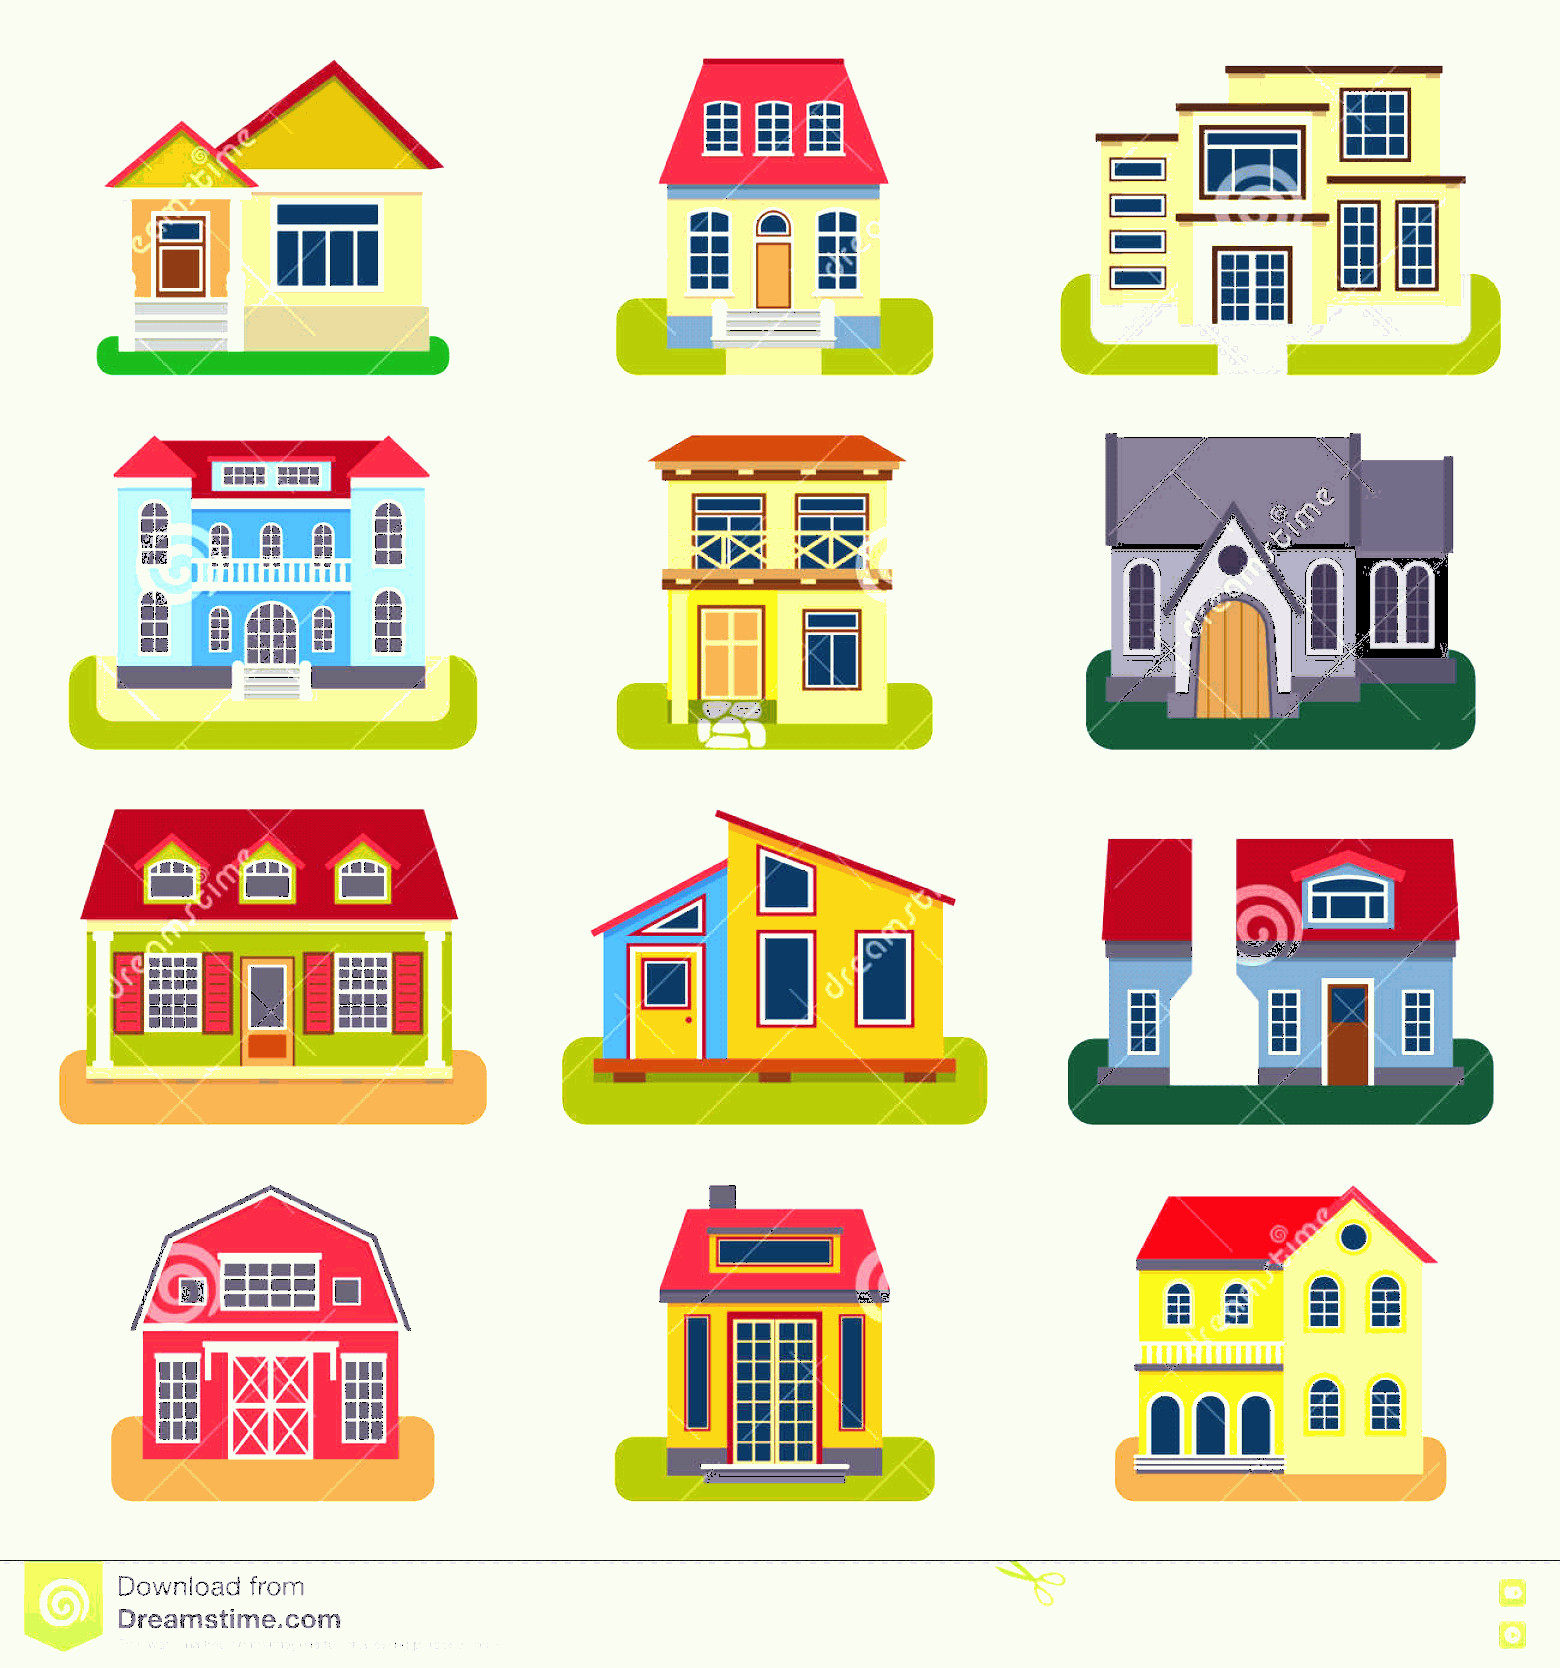 Flat Vector House: Stock Illustration Houses Front View Vector Illustration Flat Style Modern Constructions House Facade Building Architecture Home Image